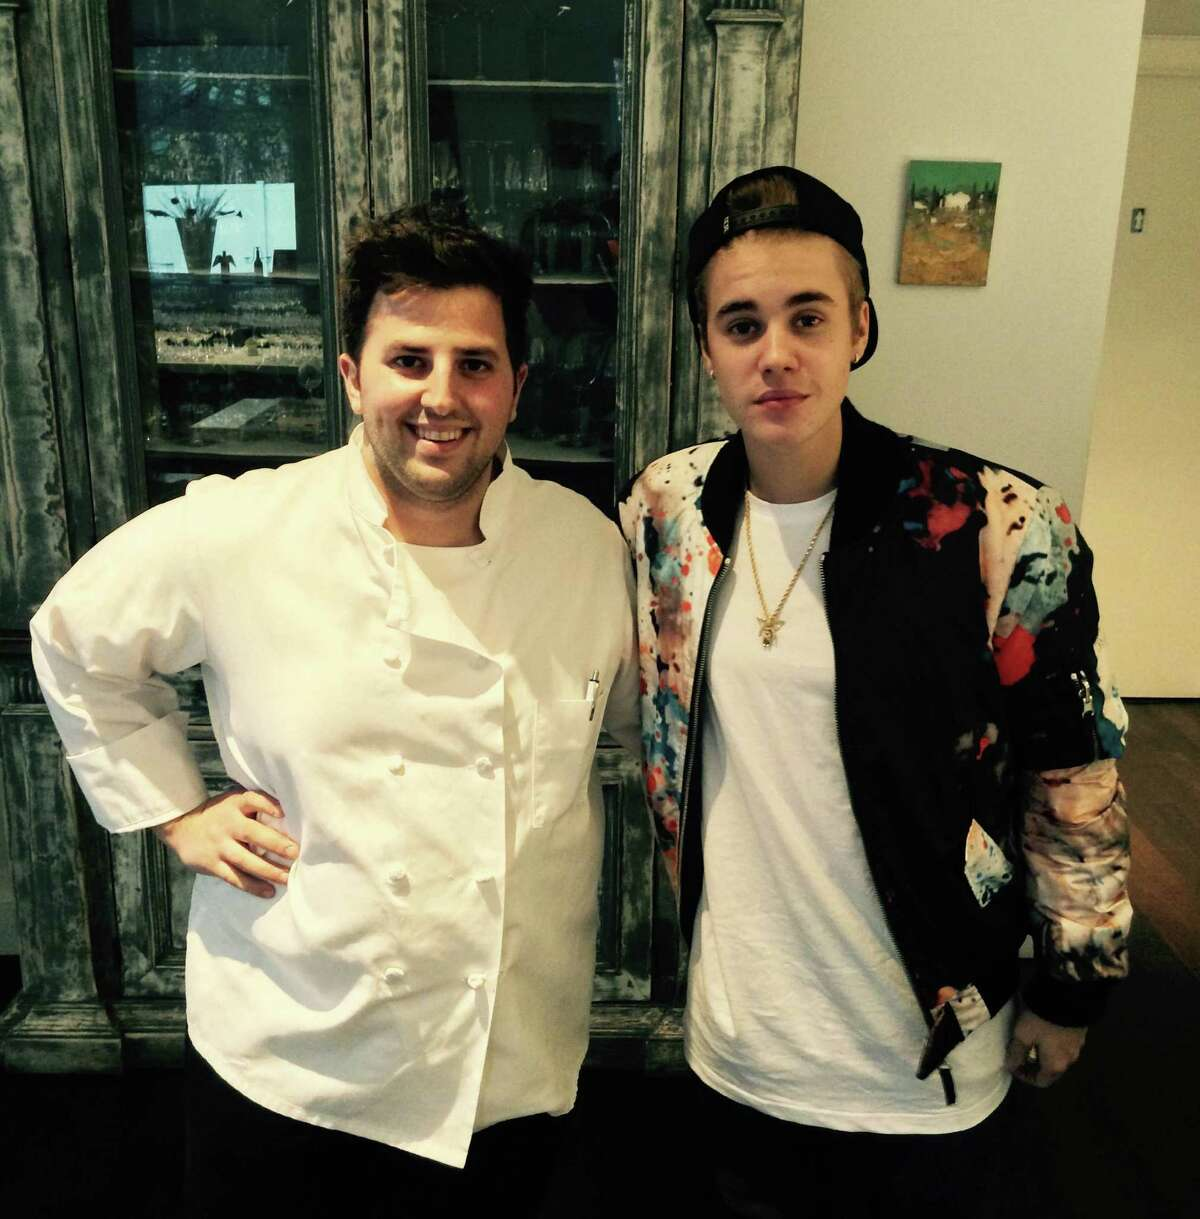 Chef Anthony John Rinaldi welcomed singer Justin Bieber to the Golden View Firenze restaurant in Greenwich last week. The pop superstar stopped in at the Railroad Avenue spot for a snack.